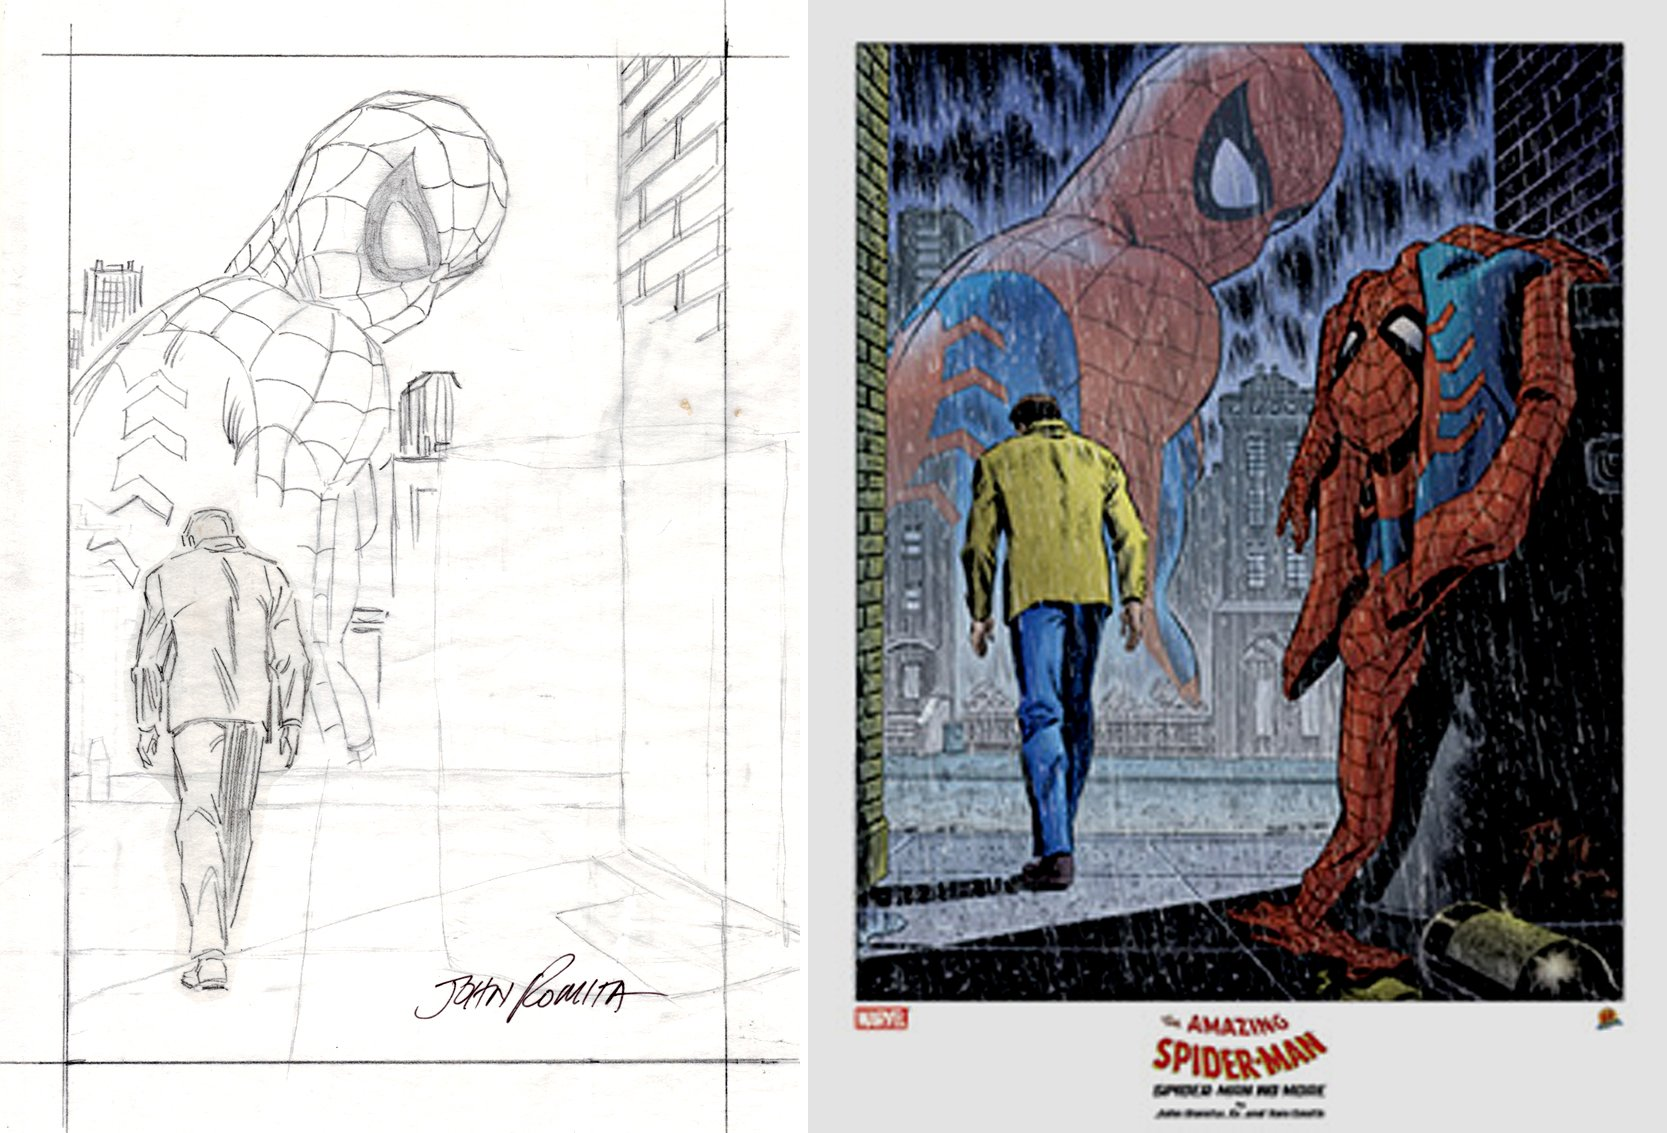 SPIDER-MAN: NO MORE! JOHN ROMITA SR. LITHOGRAPH PENCIL PRELIM (SOLD LIVE ON 'DUELING DEALERS OF COMIC ART' EPISODE #15 PODCAST ON 5-1-2021 (RE-WATCH OUR LIVE ART SELLING PODCAST HERE)